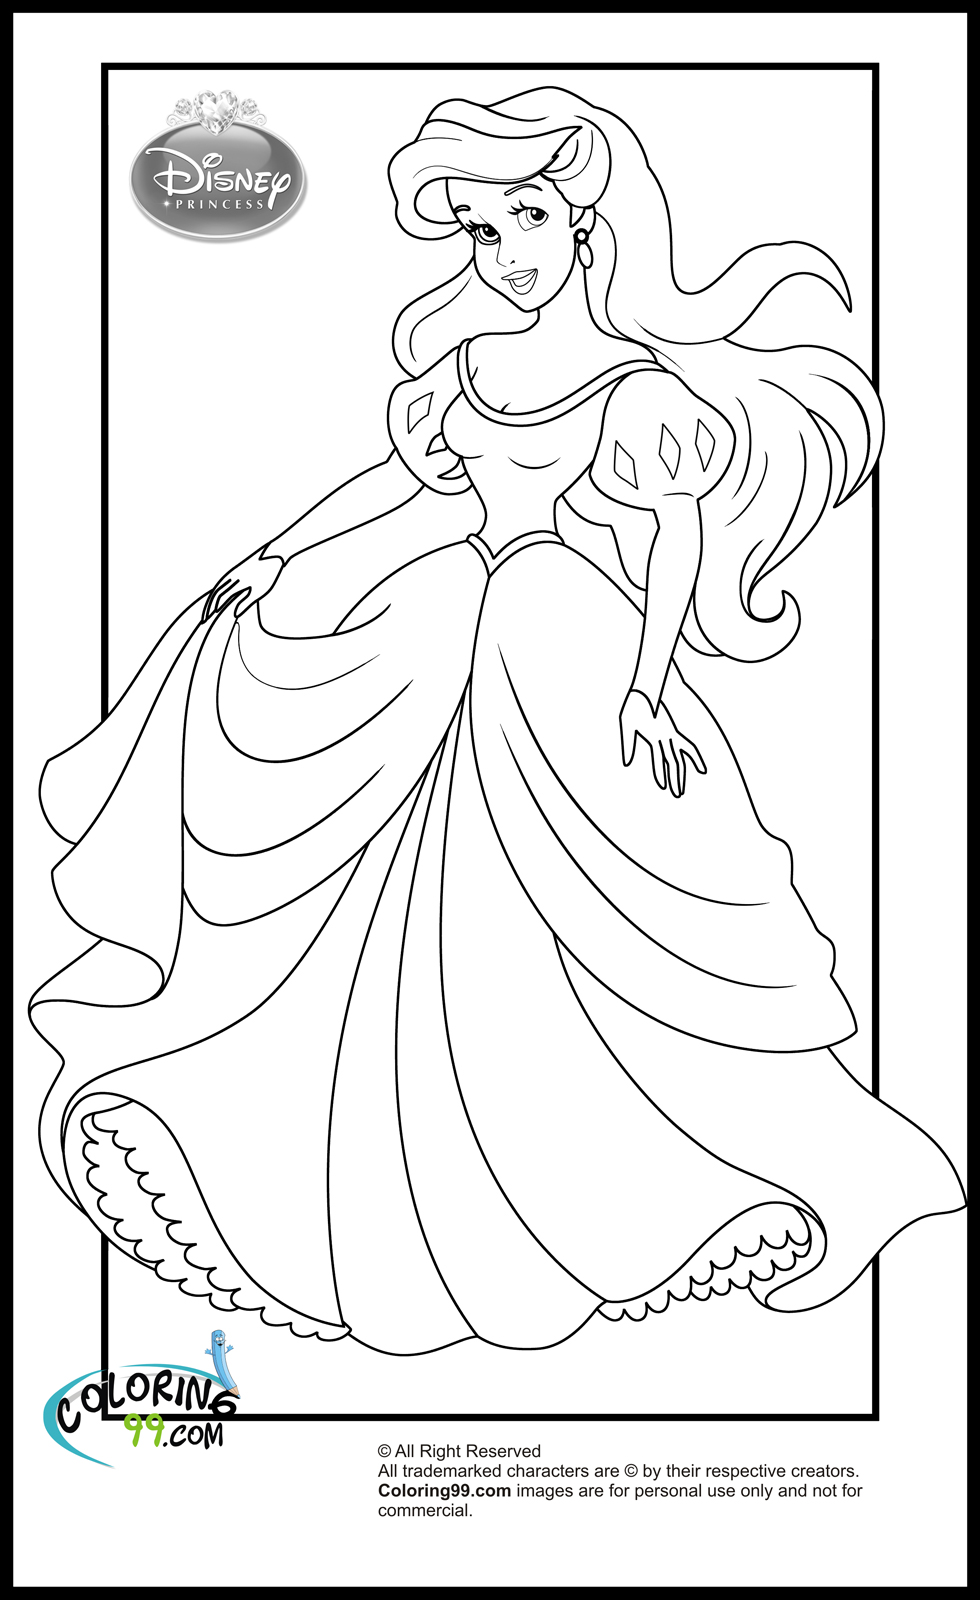 disney princess and coloring pages-#12